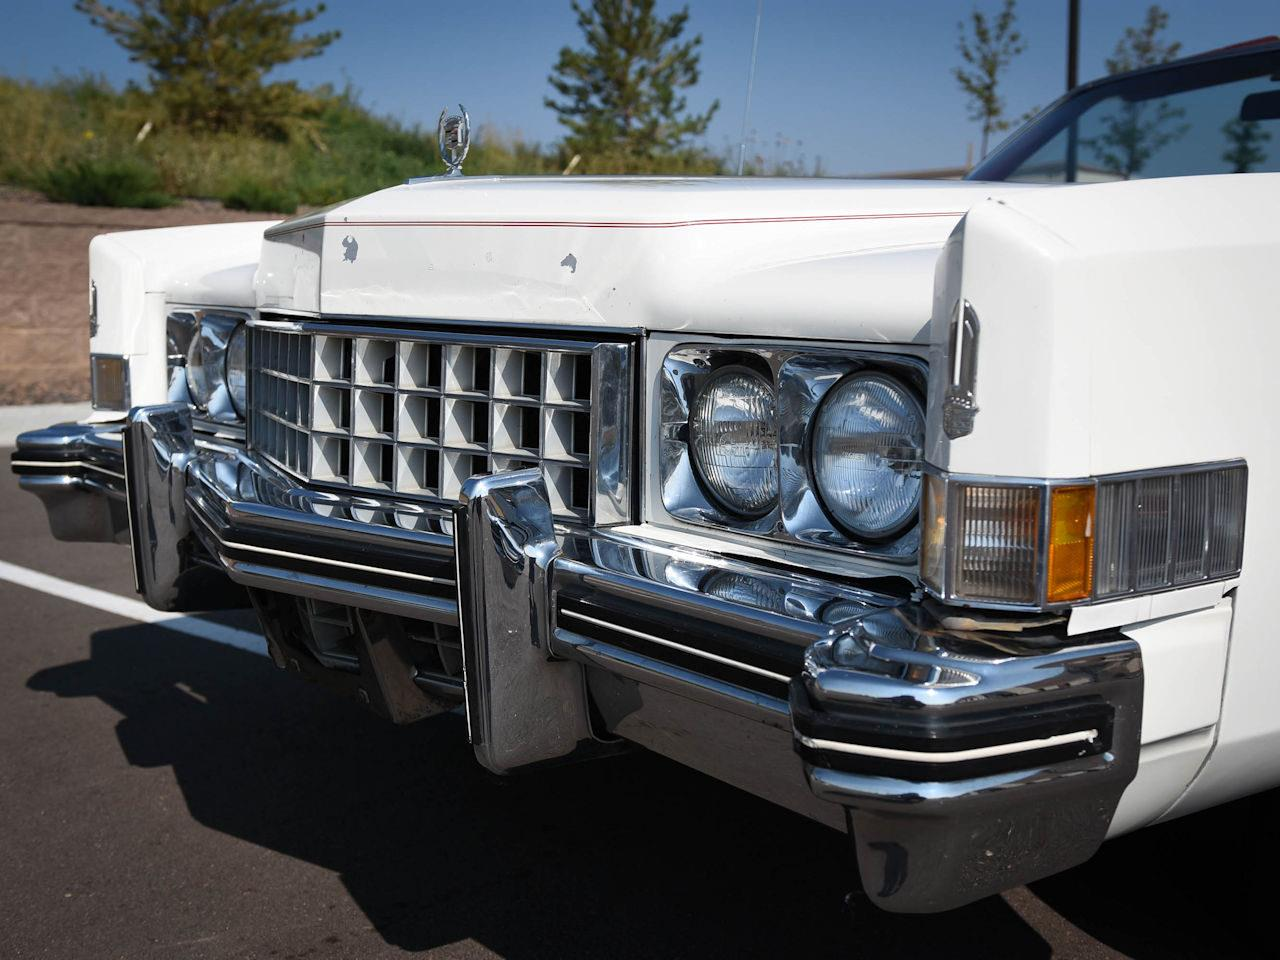 Large Picture of '73 Cadillac Eldorado located in Illinois Offered by Gateway Classic Cars - Denver - LT70